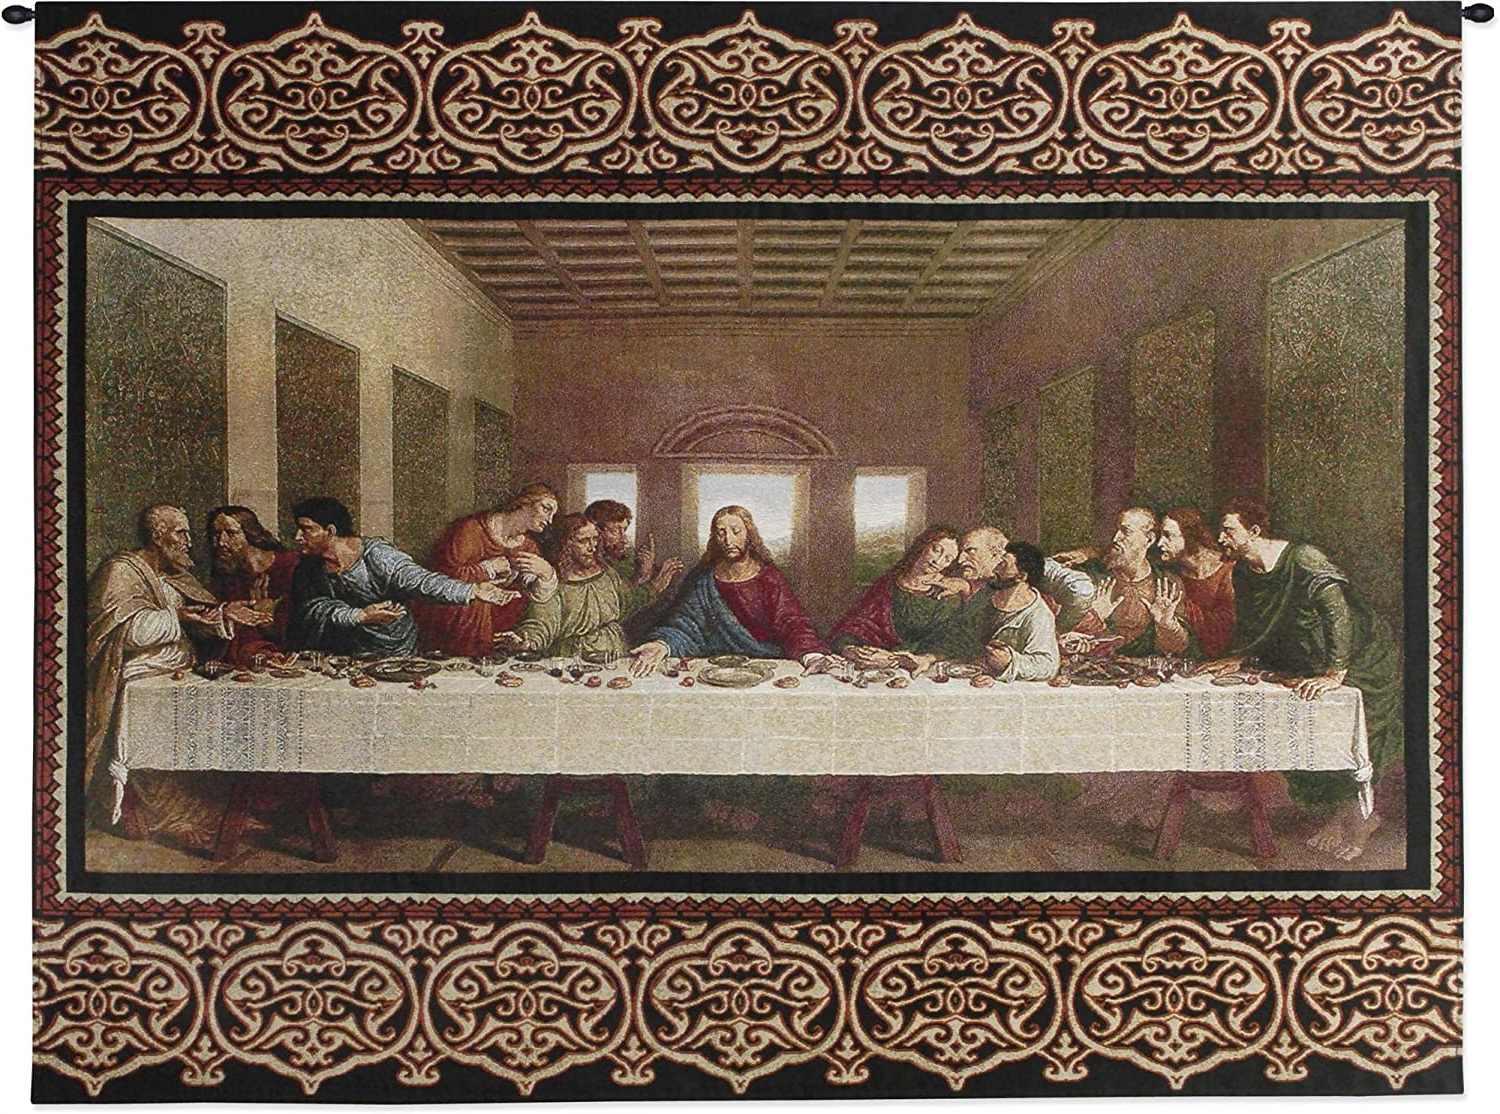 [%the Last Supperleonardo Da Vinci | Woven Tapestry Wall Art Hanging | Religious Inspirational Jesus Last Supper | 100% Cotton Usa Size 53x40 With 2020 Blended Fabric Garden Of Gethsemane Tapestries And Wall Hangings|blended Fabric Garden Of Gethsemane Tapestries And Wall Hangings In Recent The Last Supperleonardo Da Vinci | Woven Tapestry Wall Art Hanging | Religious Inspirational Jesus Last Supper | 100% Cotton Usa Size 53x40|preferred Blended Fabric Garden Of Gethsemane Tapestries And Wall Hangings For The Last Supperleonardo Da Vinci | Woven Tapestry Wall Art Hanging | Religious Inspirational Jesus Last Supper | 100% Cotton Usa Size 53x40|2019 The Last Supperleonardo Da Vinci | Woven Tapestry Wall Art Hanging | Religious Inspirational Jesus Last Supper | 100% Cotton Usa Size 53x40 For Blended Fabric Garden Of Gethsemane Tapestries And Wall Hangings%] (View 6 of 20)